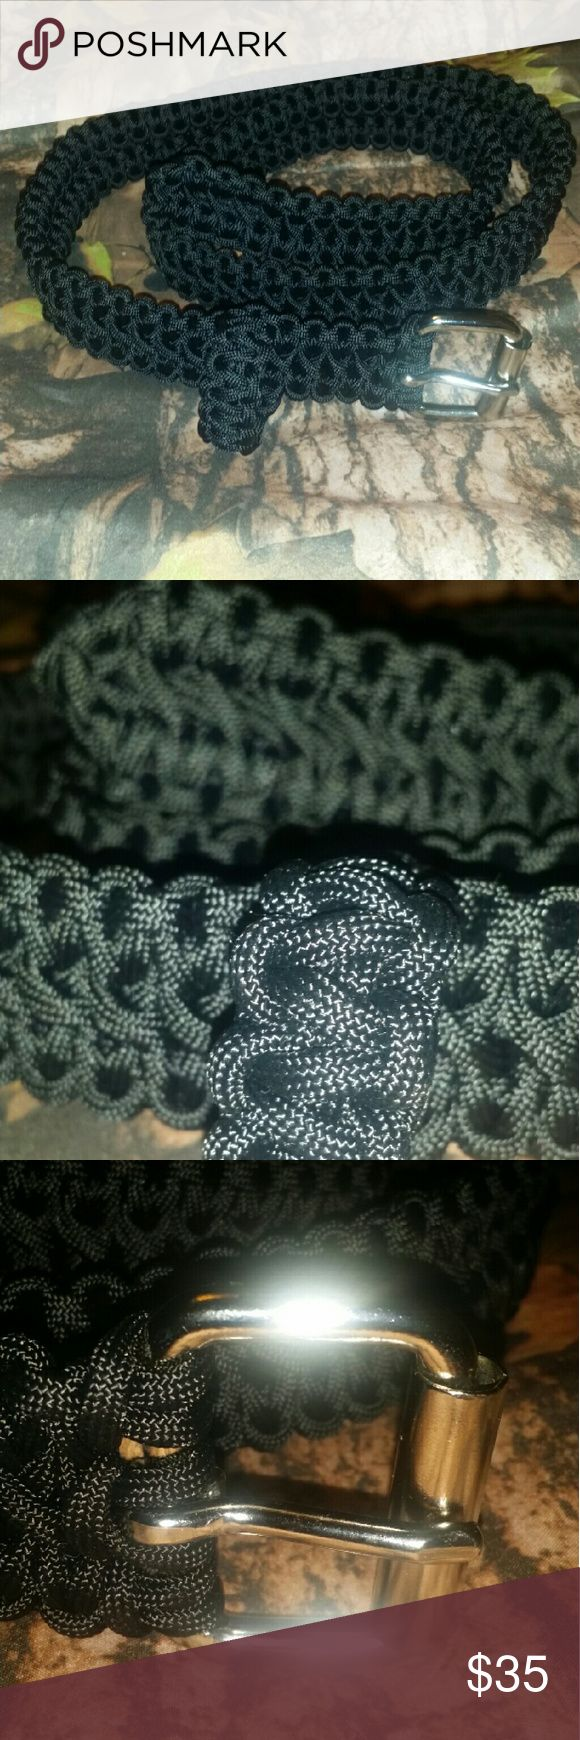 DOUBLE COBRA BELT Handcrafted Double Cobra Braided Paracord Black Belt  with Silver Horse Roller buckle and built in Single cobra Braided loop keeper. Military Spec paracord... Super tough and rugged made to last. Everyday usage or for outdoor work/Sports.  * NWOT  * UNISEX Accessories Belts